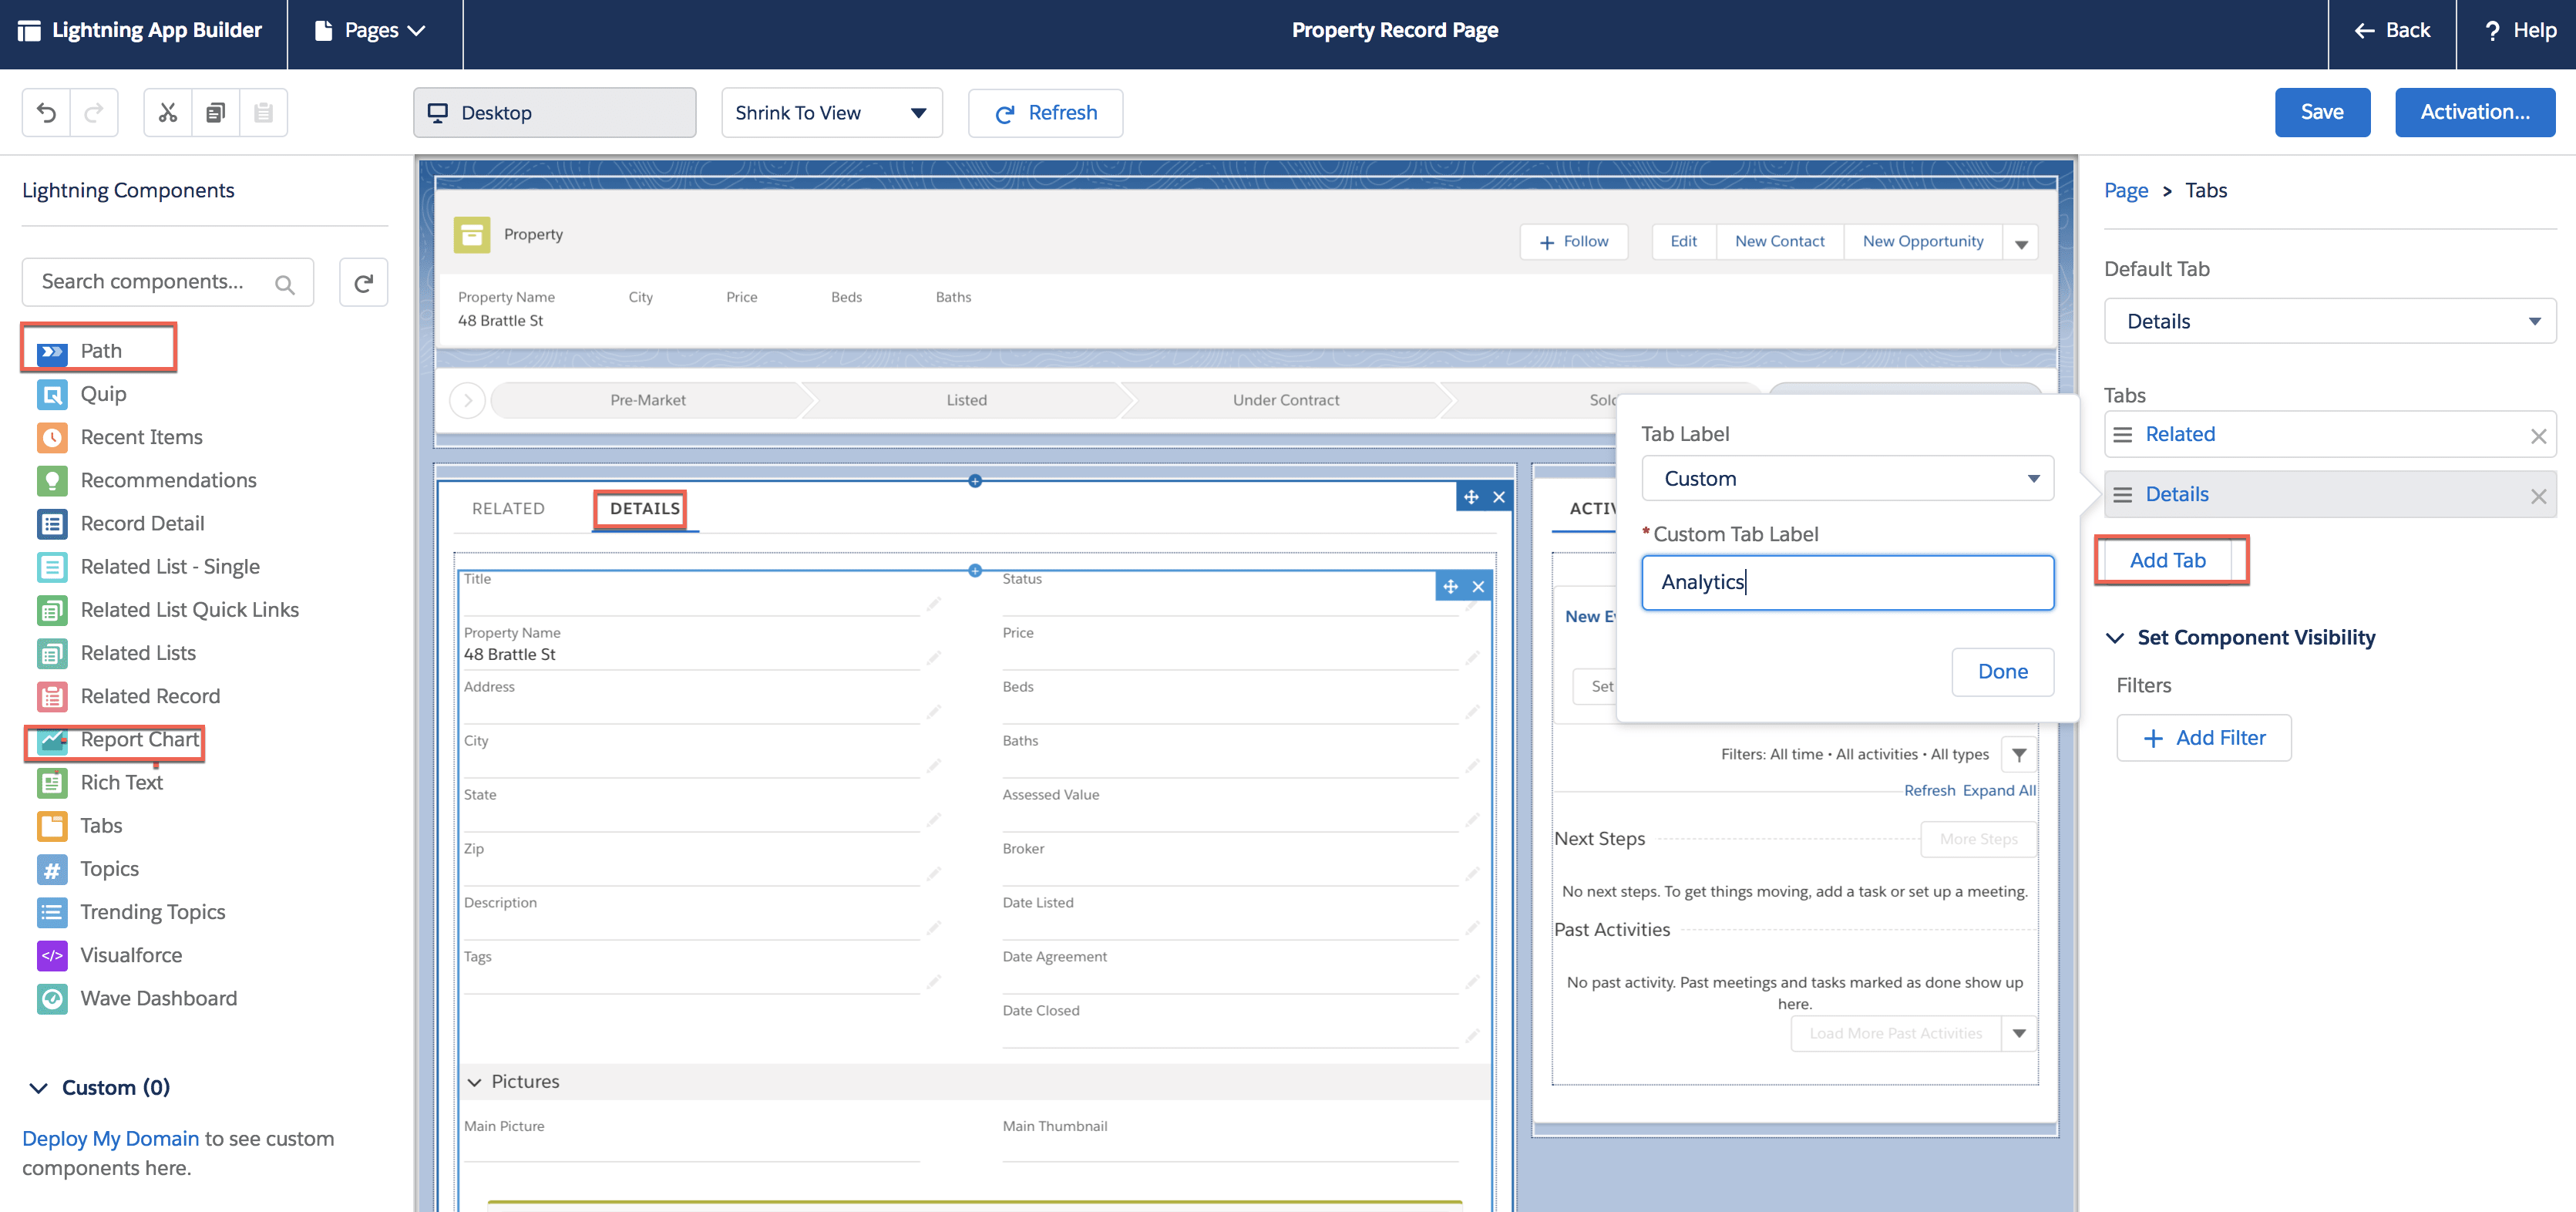 Image that shows the Path component being dragged onto the Property record page